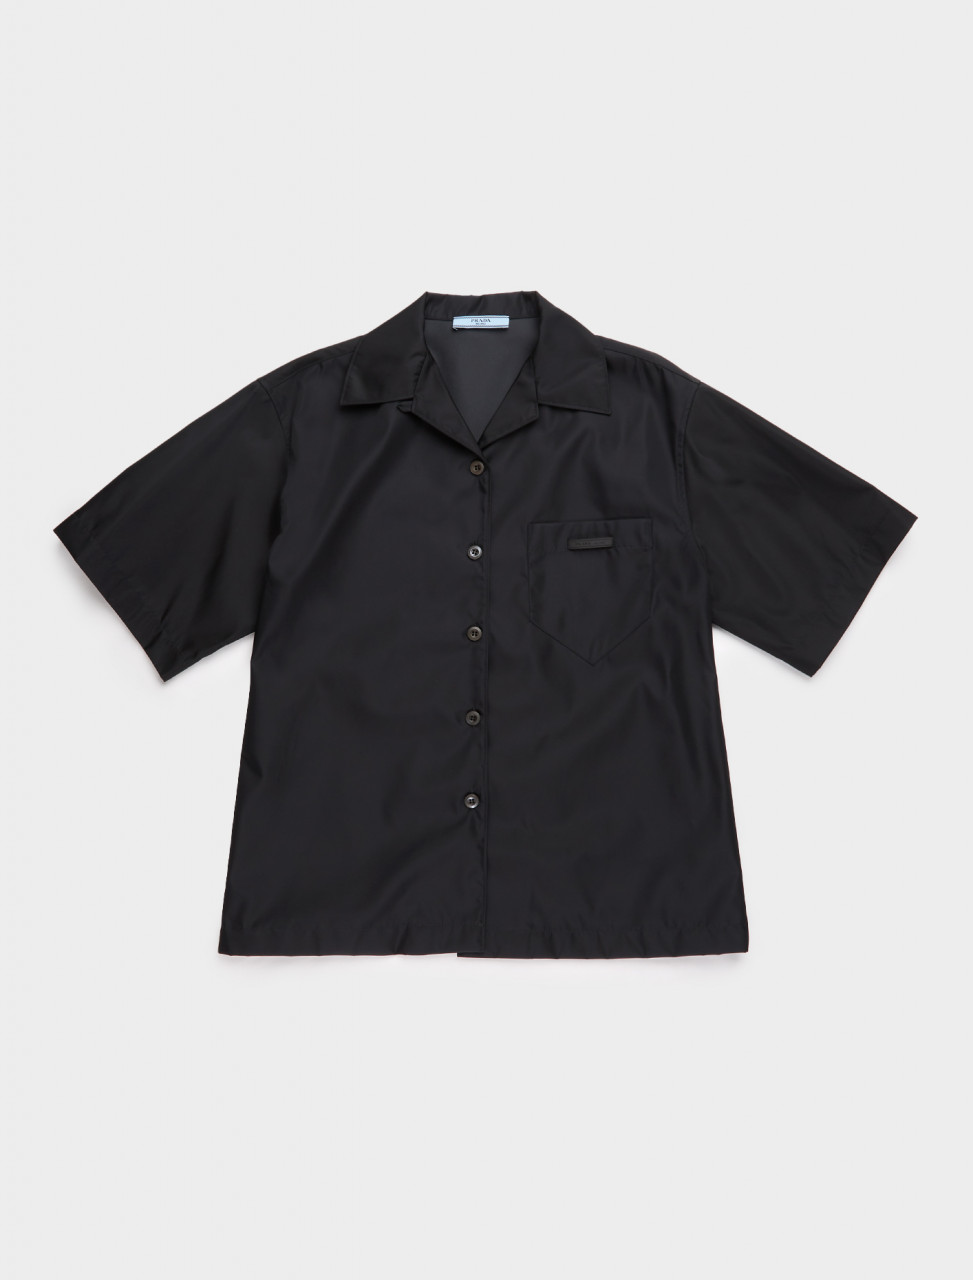 240691-F0002 PRADA RE NYLON SHIRT BLACK